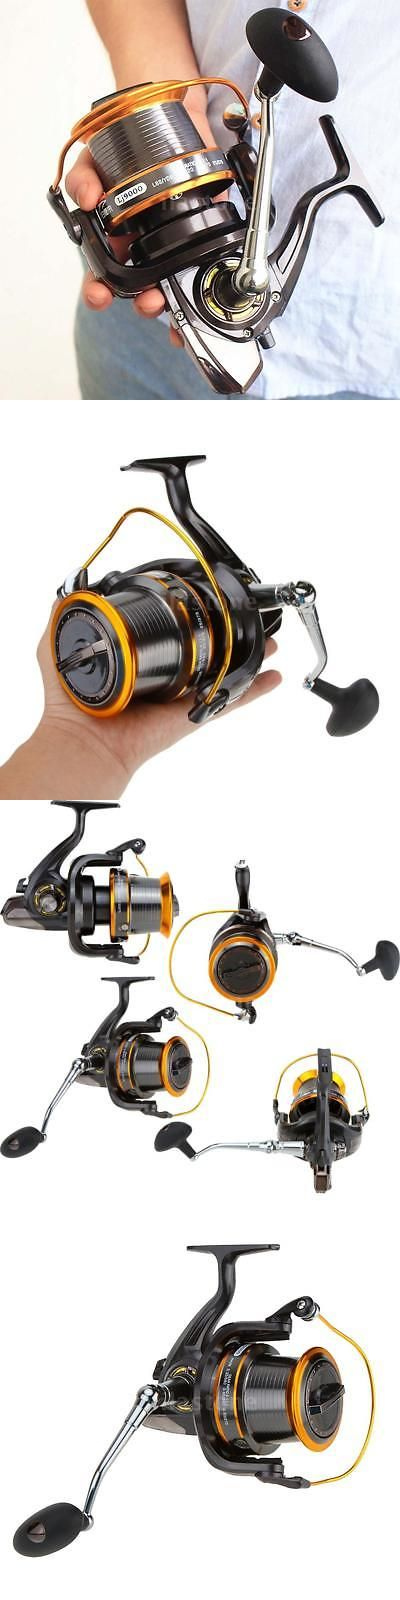 Spinning Reels 36147: Long Shot Saltwater Spinning Fishing Reel 9000 13Bb Metal Spool Surf Casting -> BUY IT NOW ONLY: $30.55 on eBay!